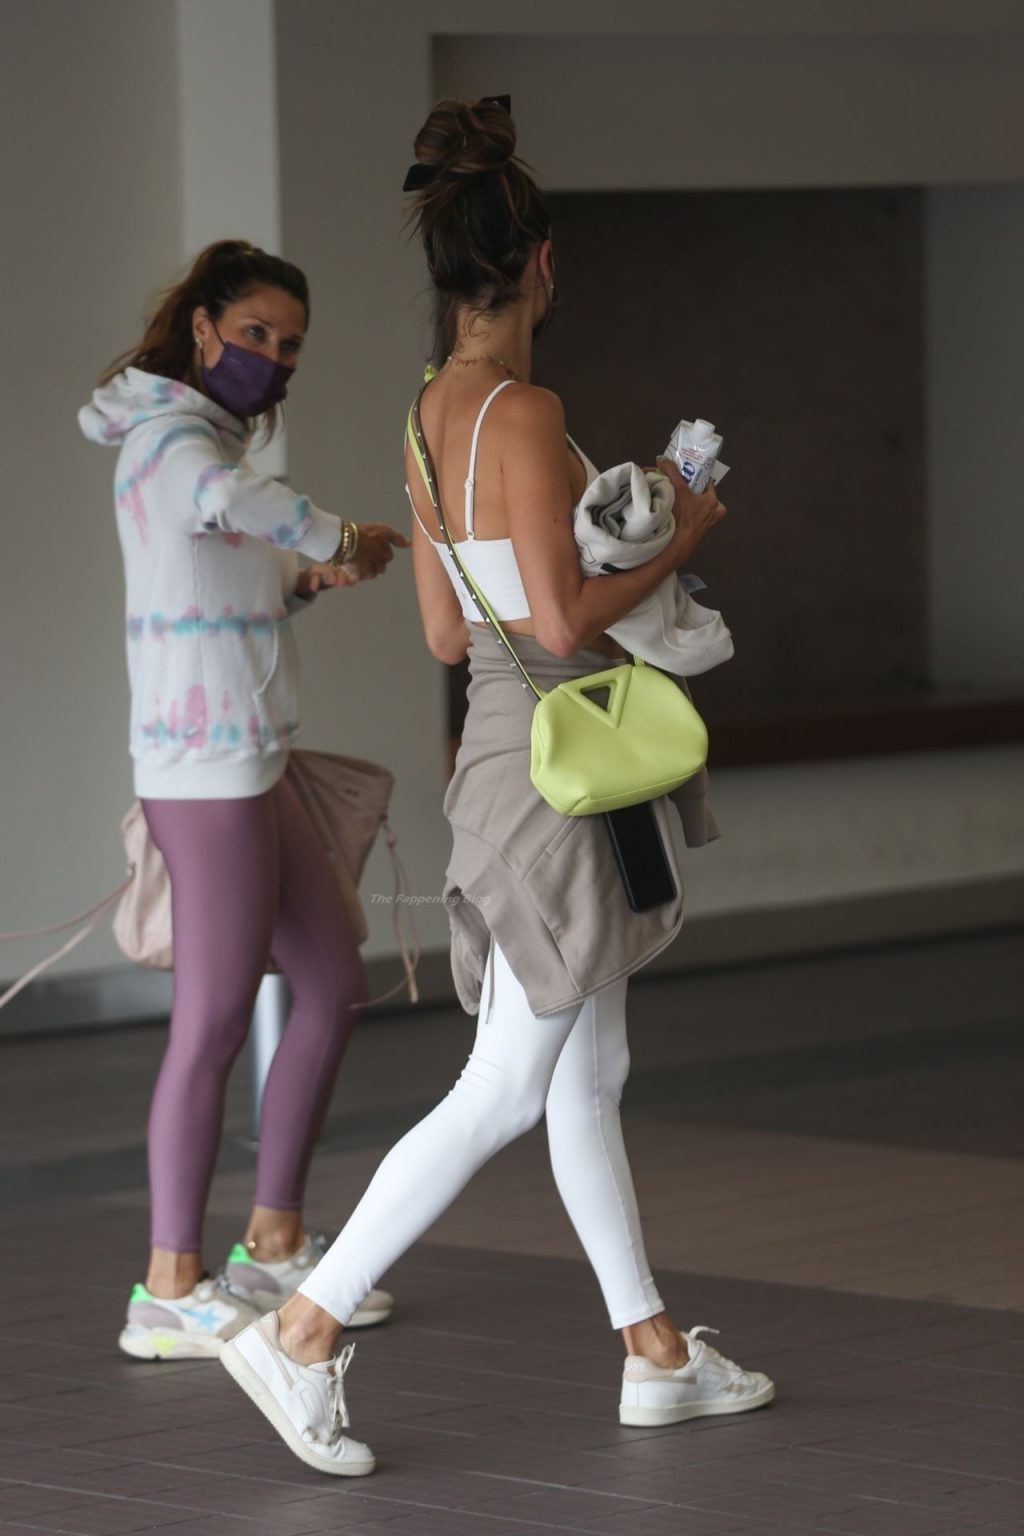 Alessandra Ambrosio Starts Off Her Week with a Pilates Session (44 Photos)